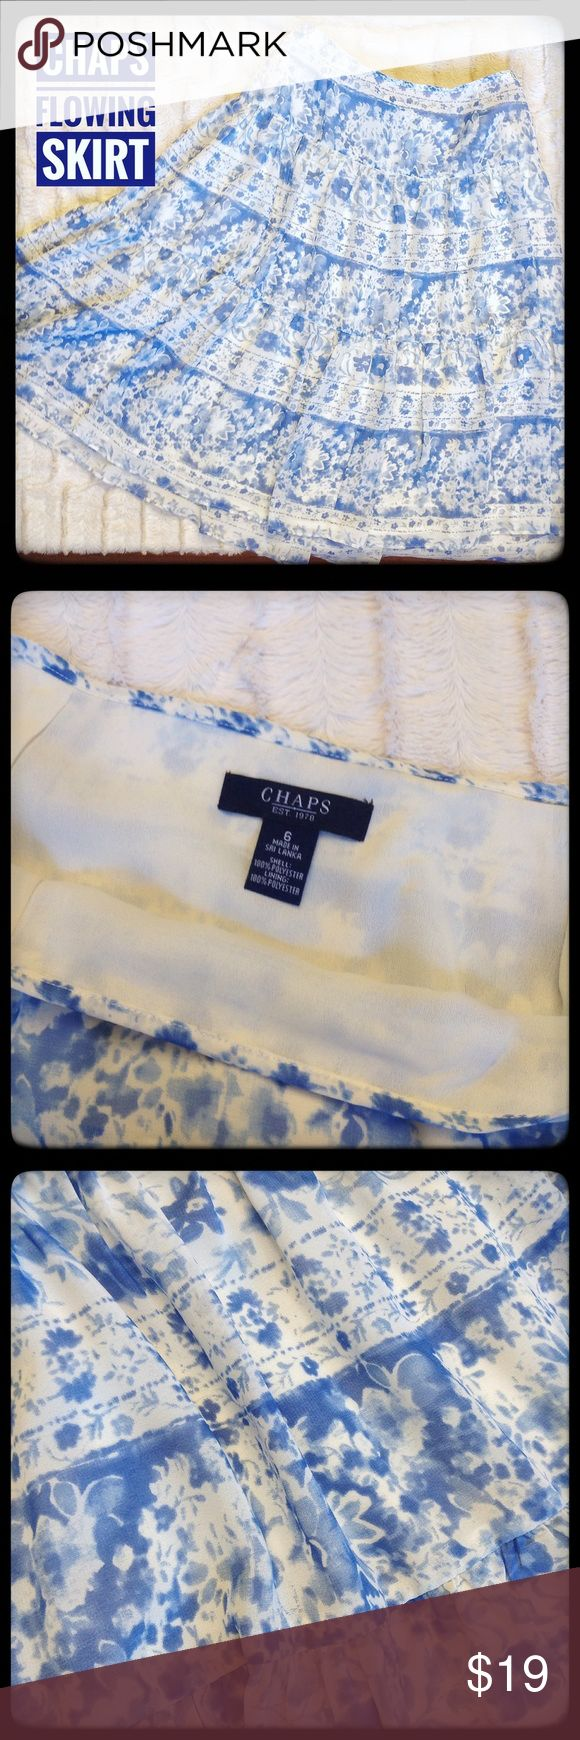 ✨Chaps Lined Flowing Blue and White Skirt Sz 6✨ Beautiful skirt by Chaps. Fully Lined, soft and Flowing A line design, this is a classic beauty. The length is rests right above the knee. The blue is a soft muted blend of royal and variances of blue. In excellent condition and ready to enjoy! Chaps Skirts A-Line or Full